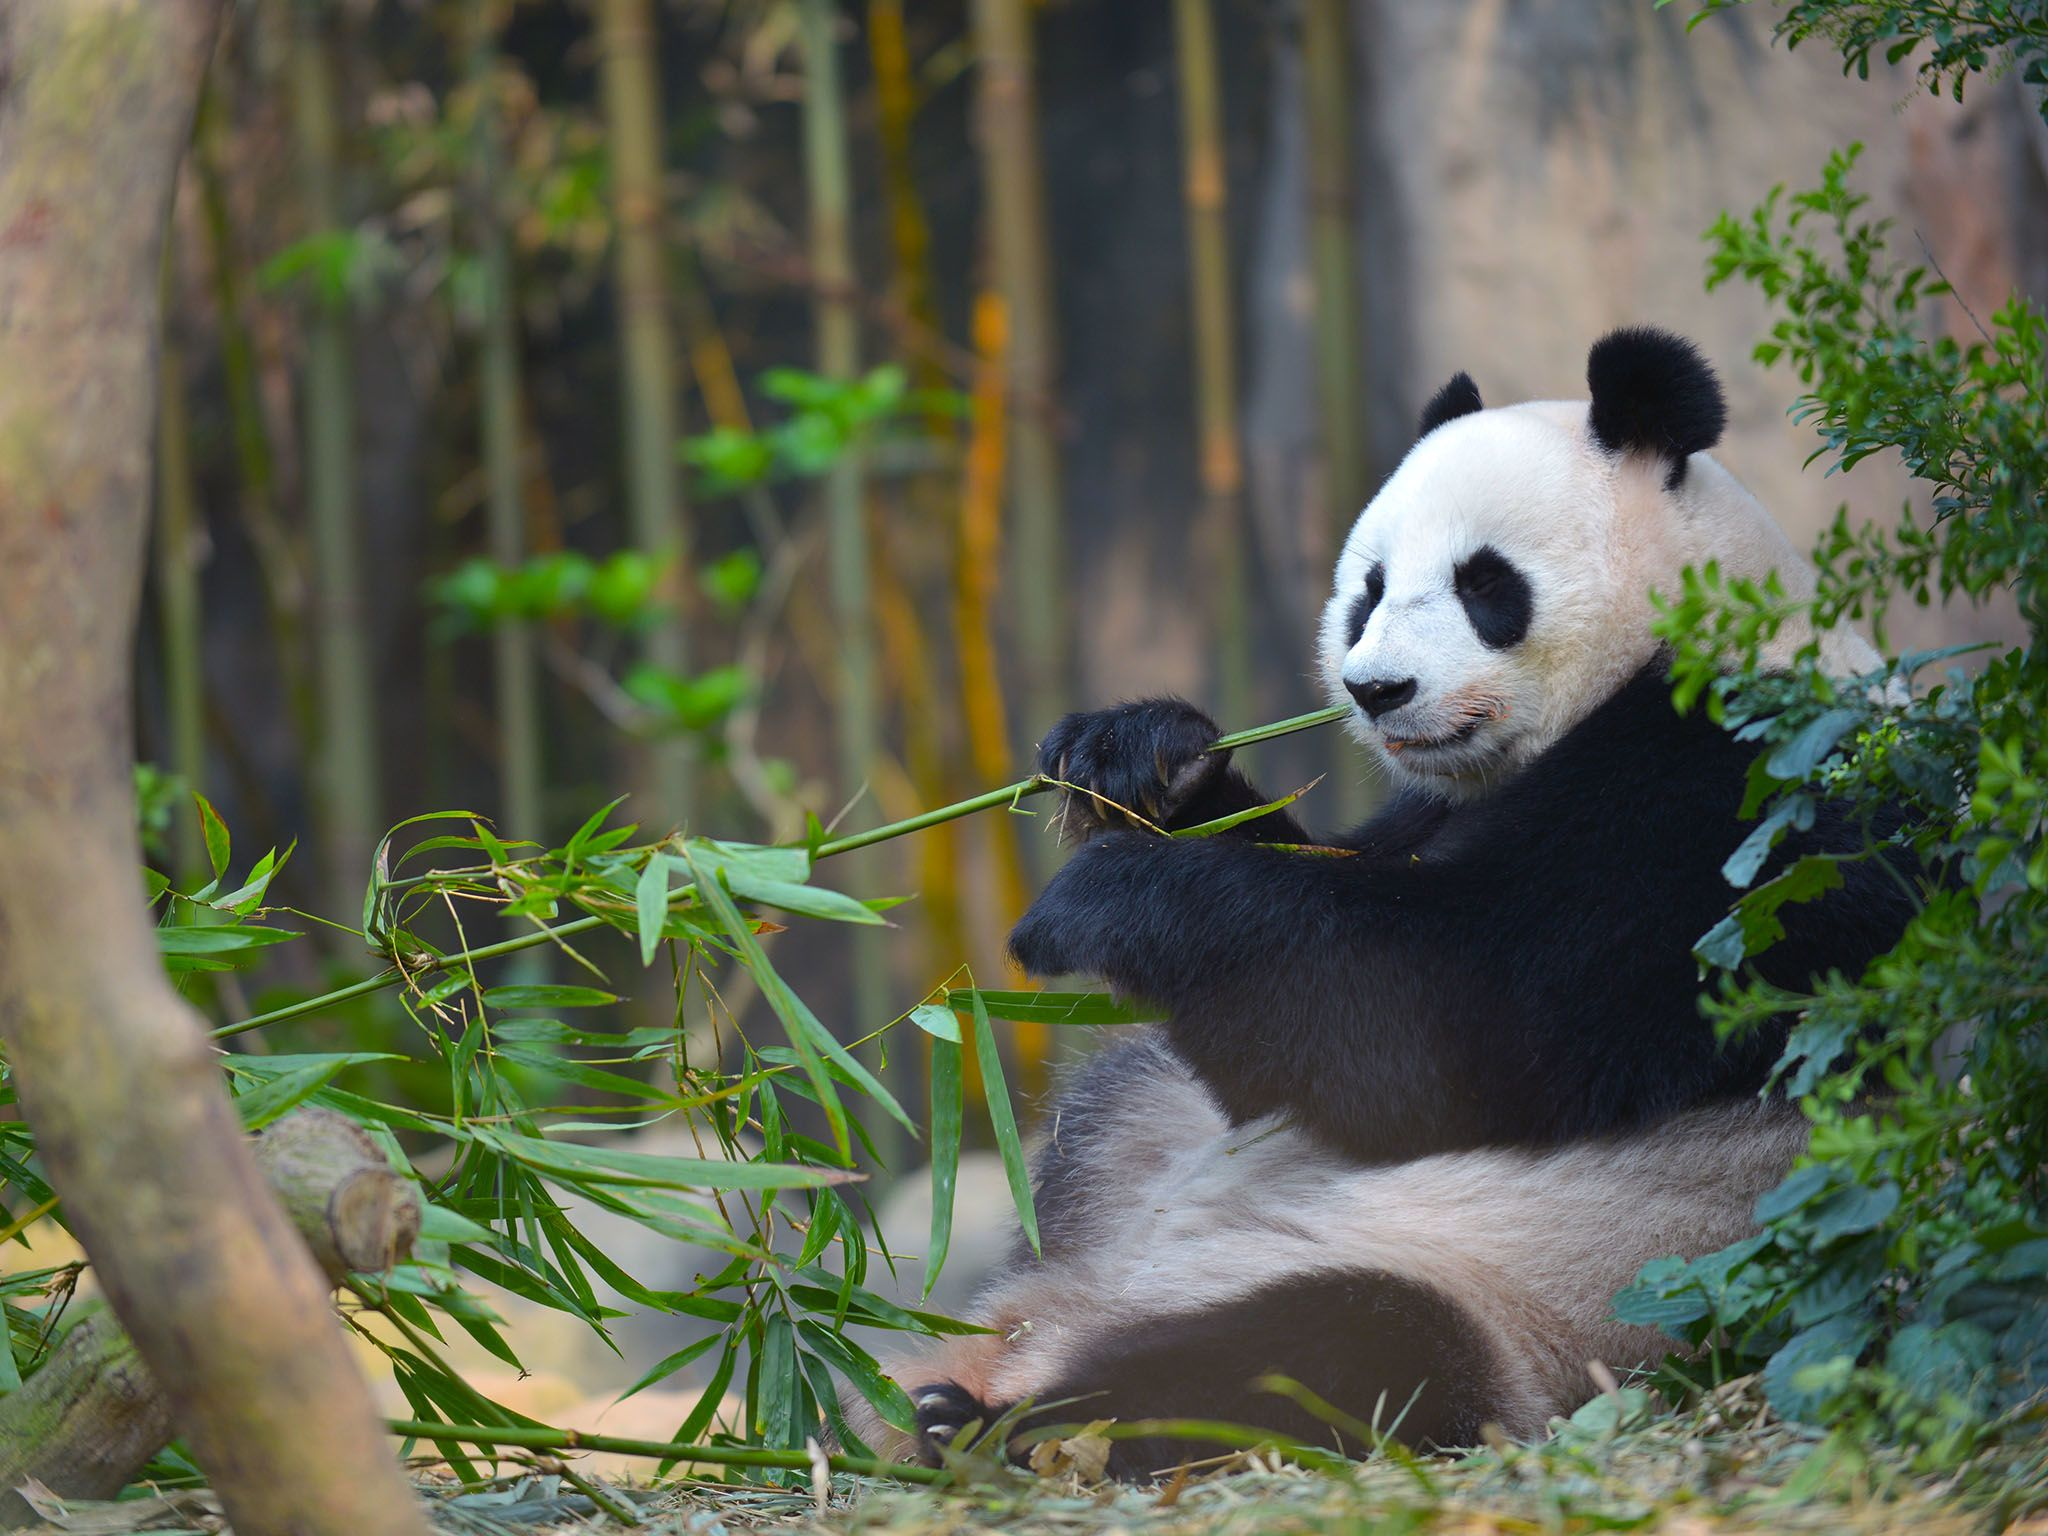 Singapore: Jia Jia eating bamboo shoots in her exhibit. This image is from Making Pandas. [Photo of the day - August 2016]